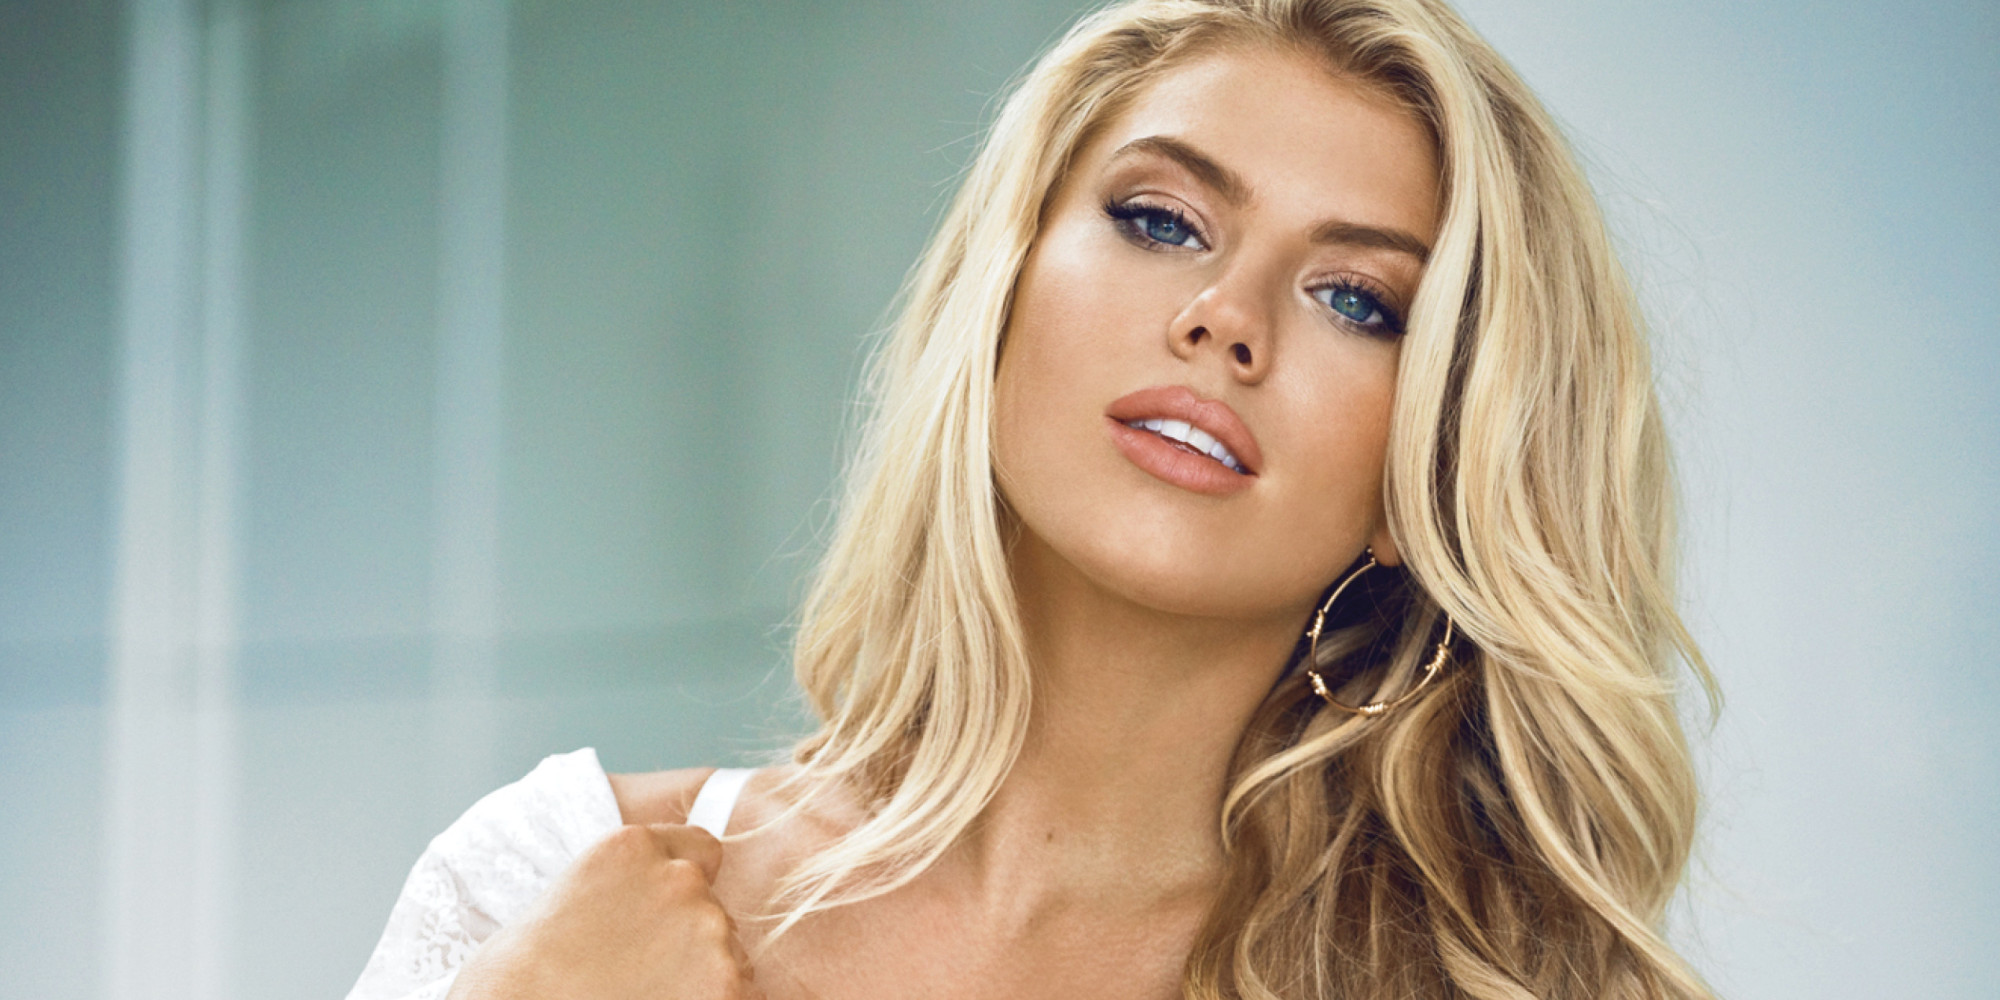 Gta Girl Gun Desktop Wallpaper Charlotte Mckinney Gives Victoria S Secret A Run For Its